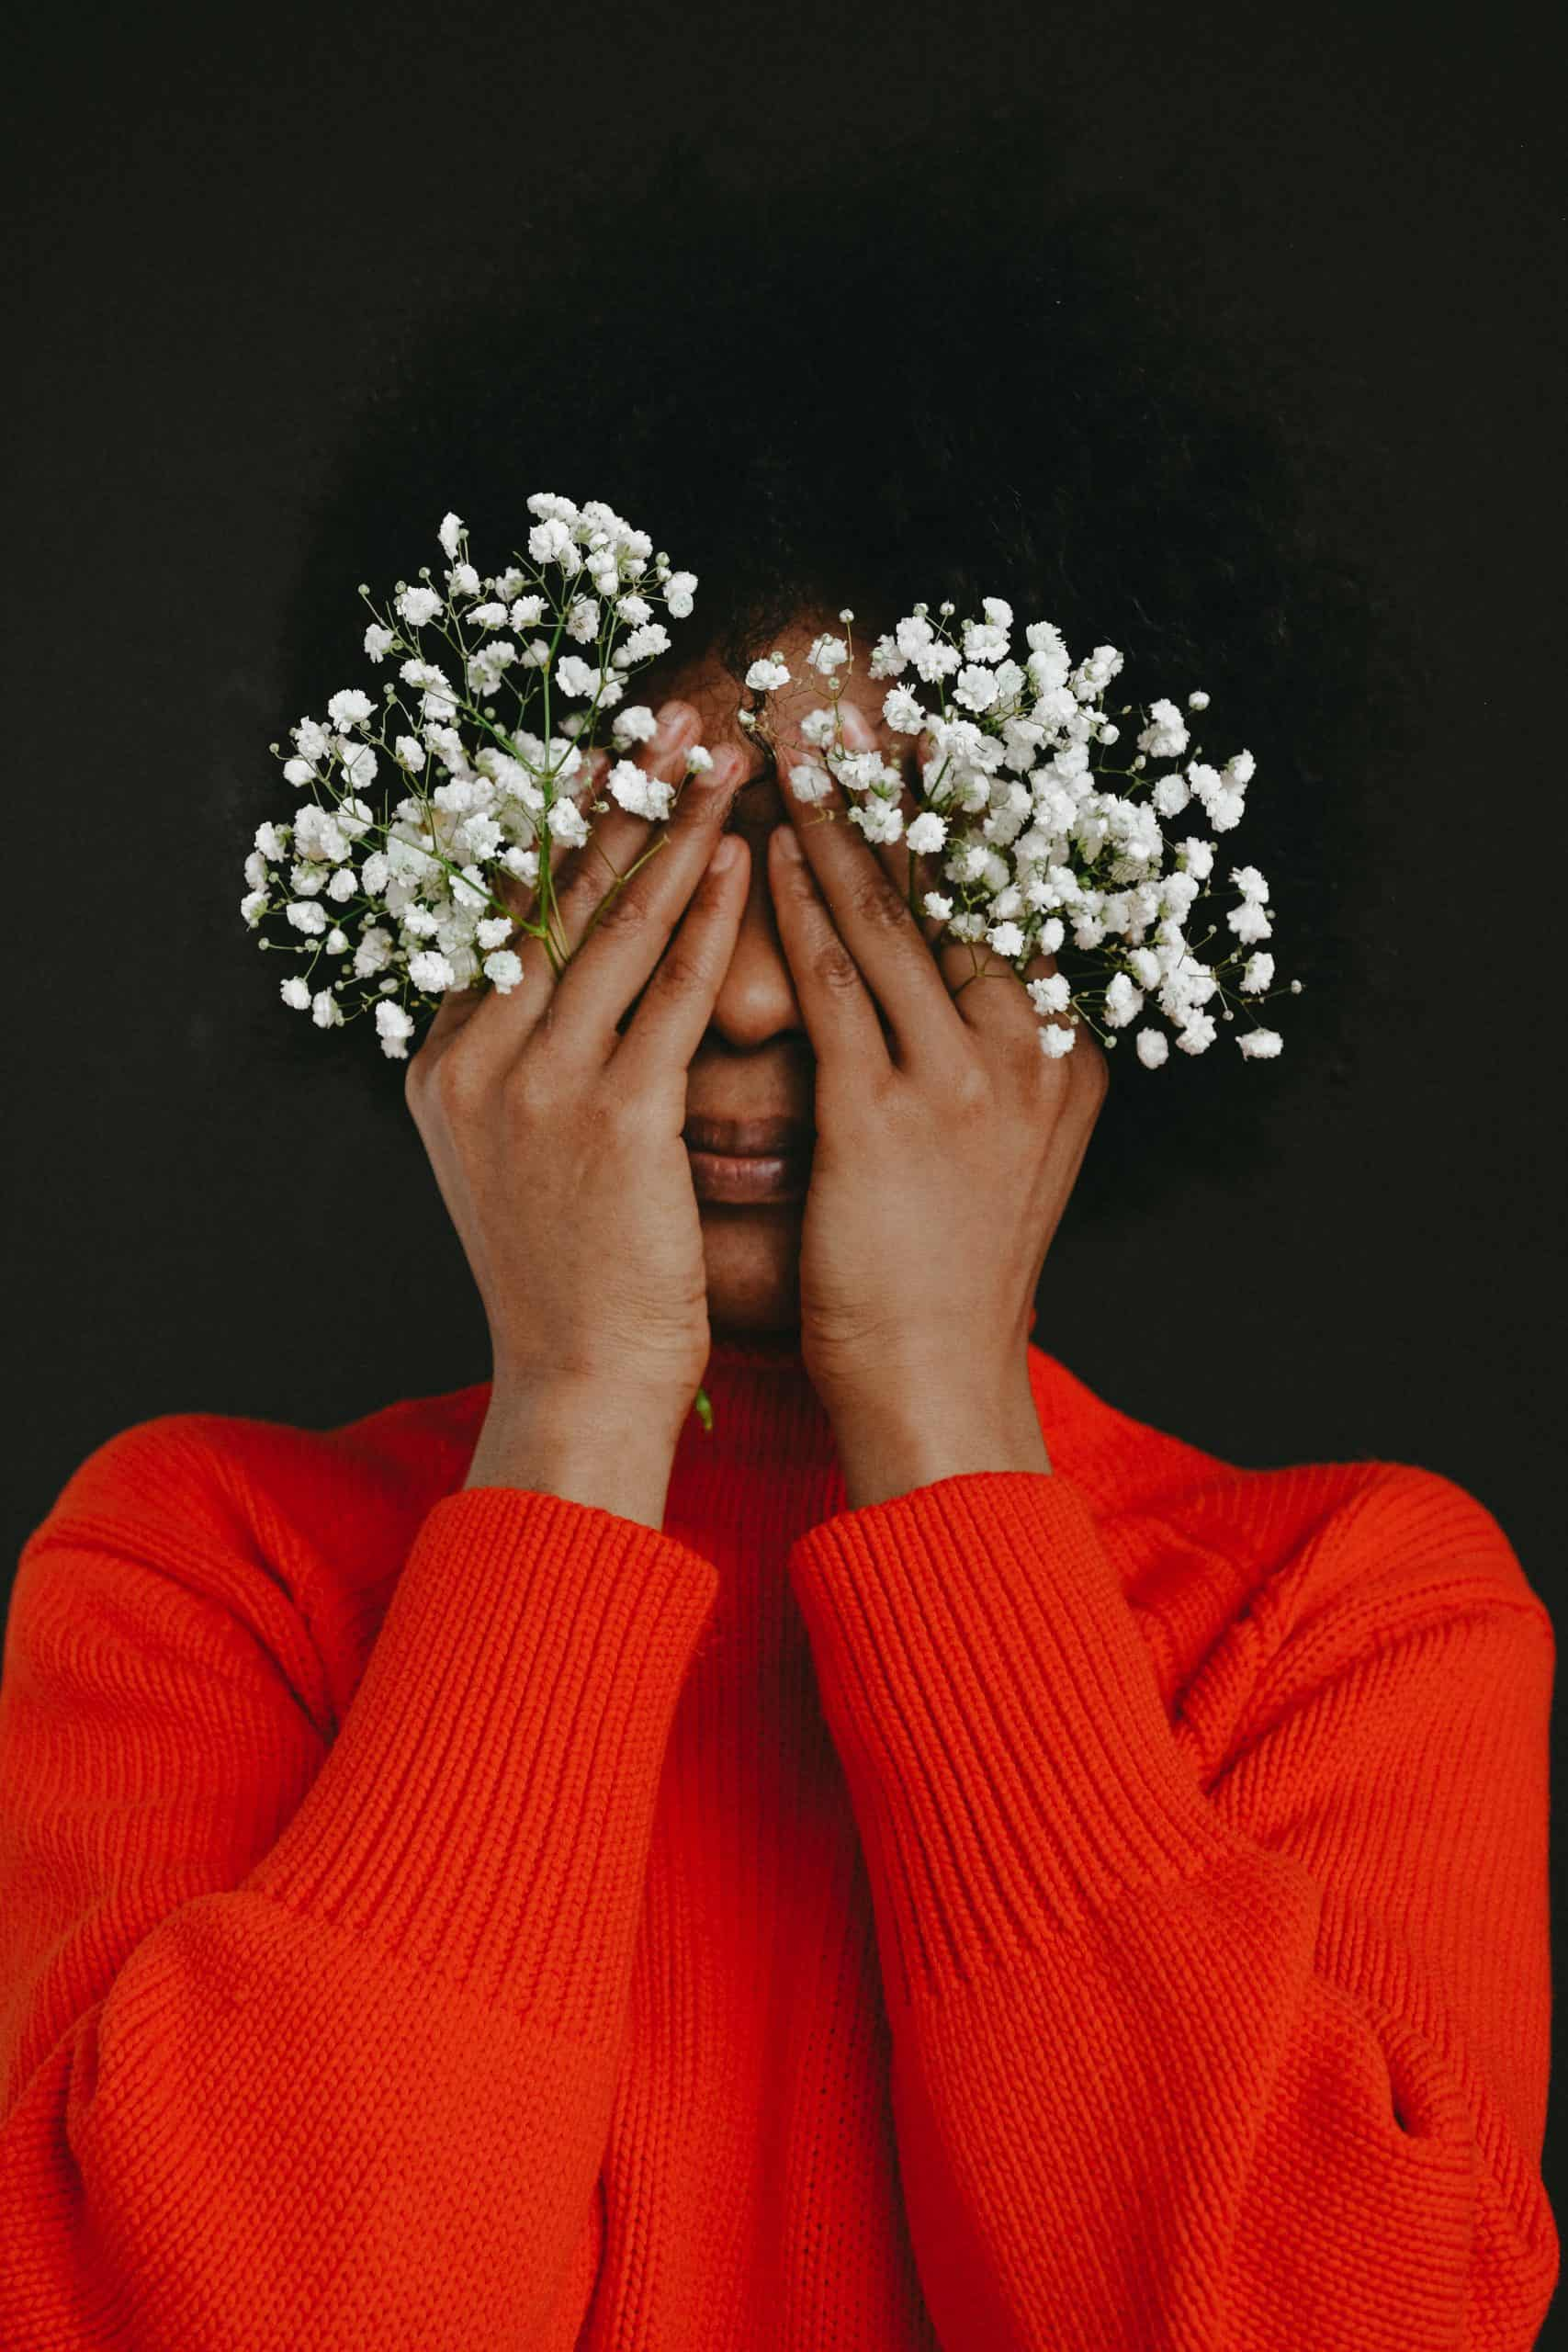 woman holding white flowers covering her face with her hands